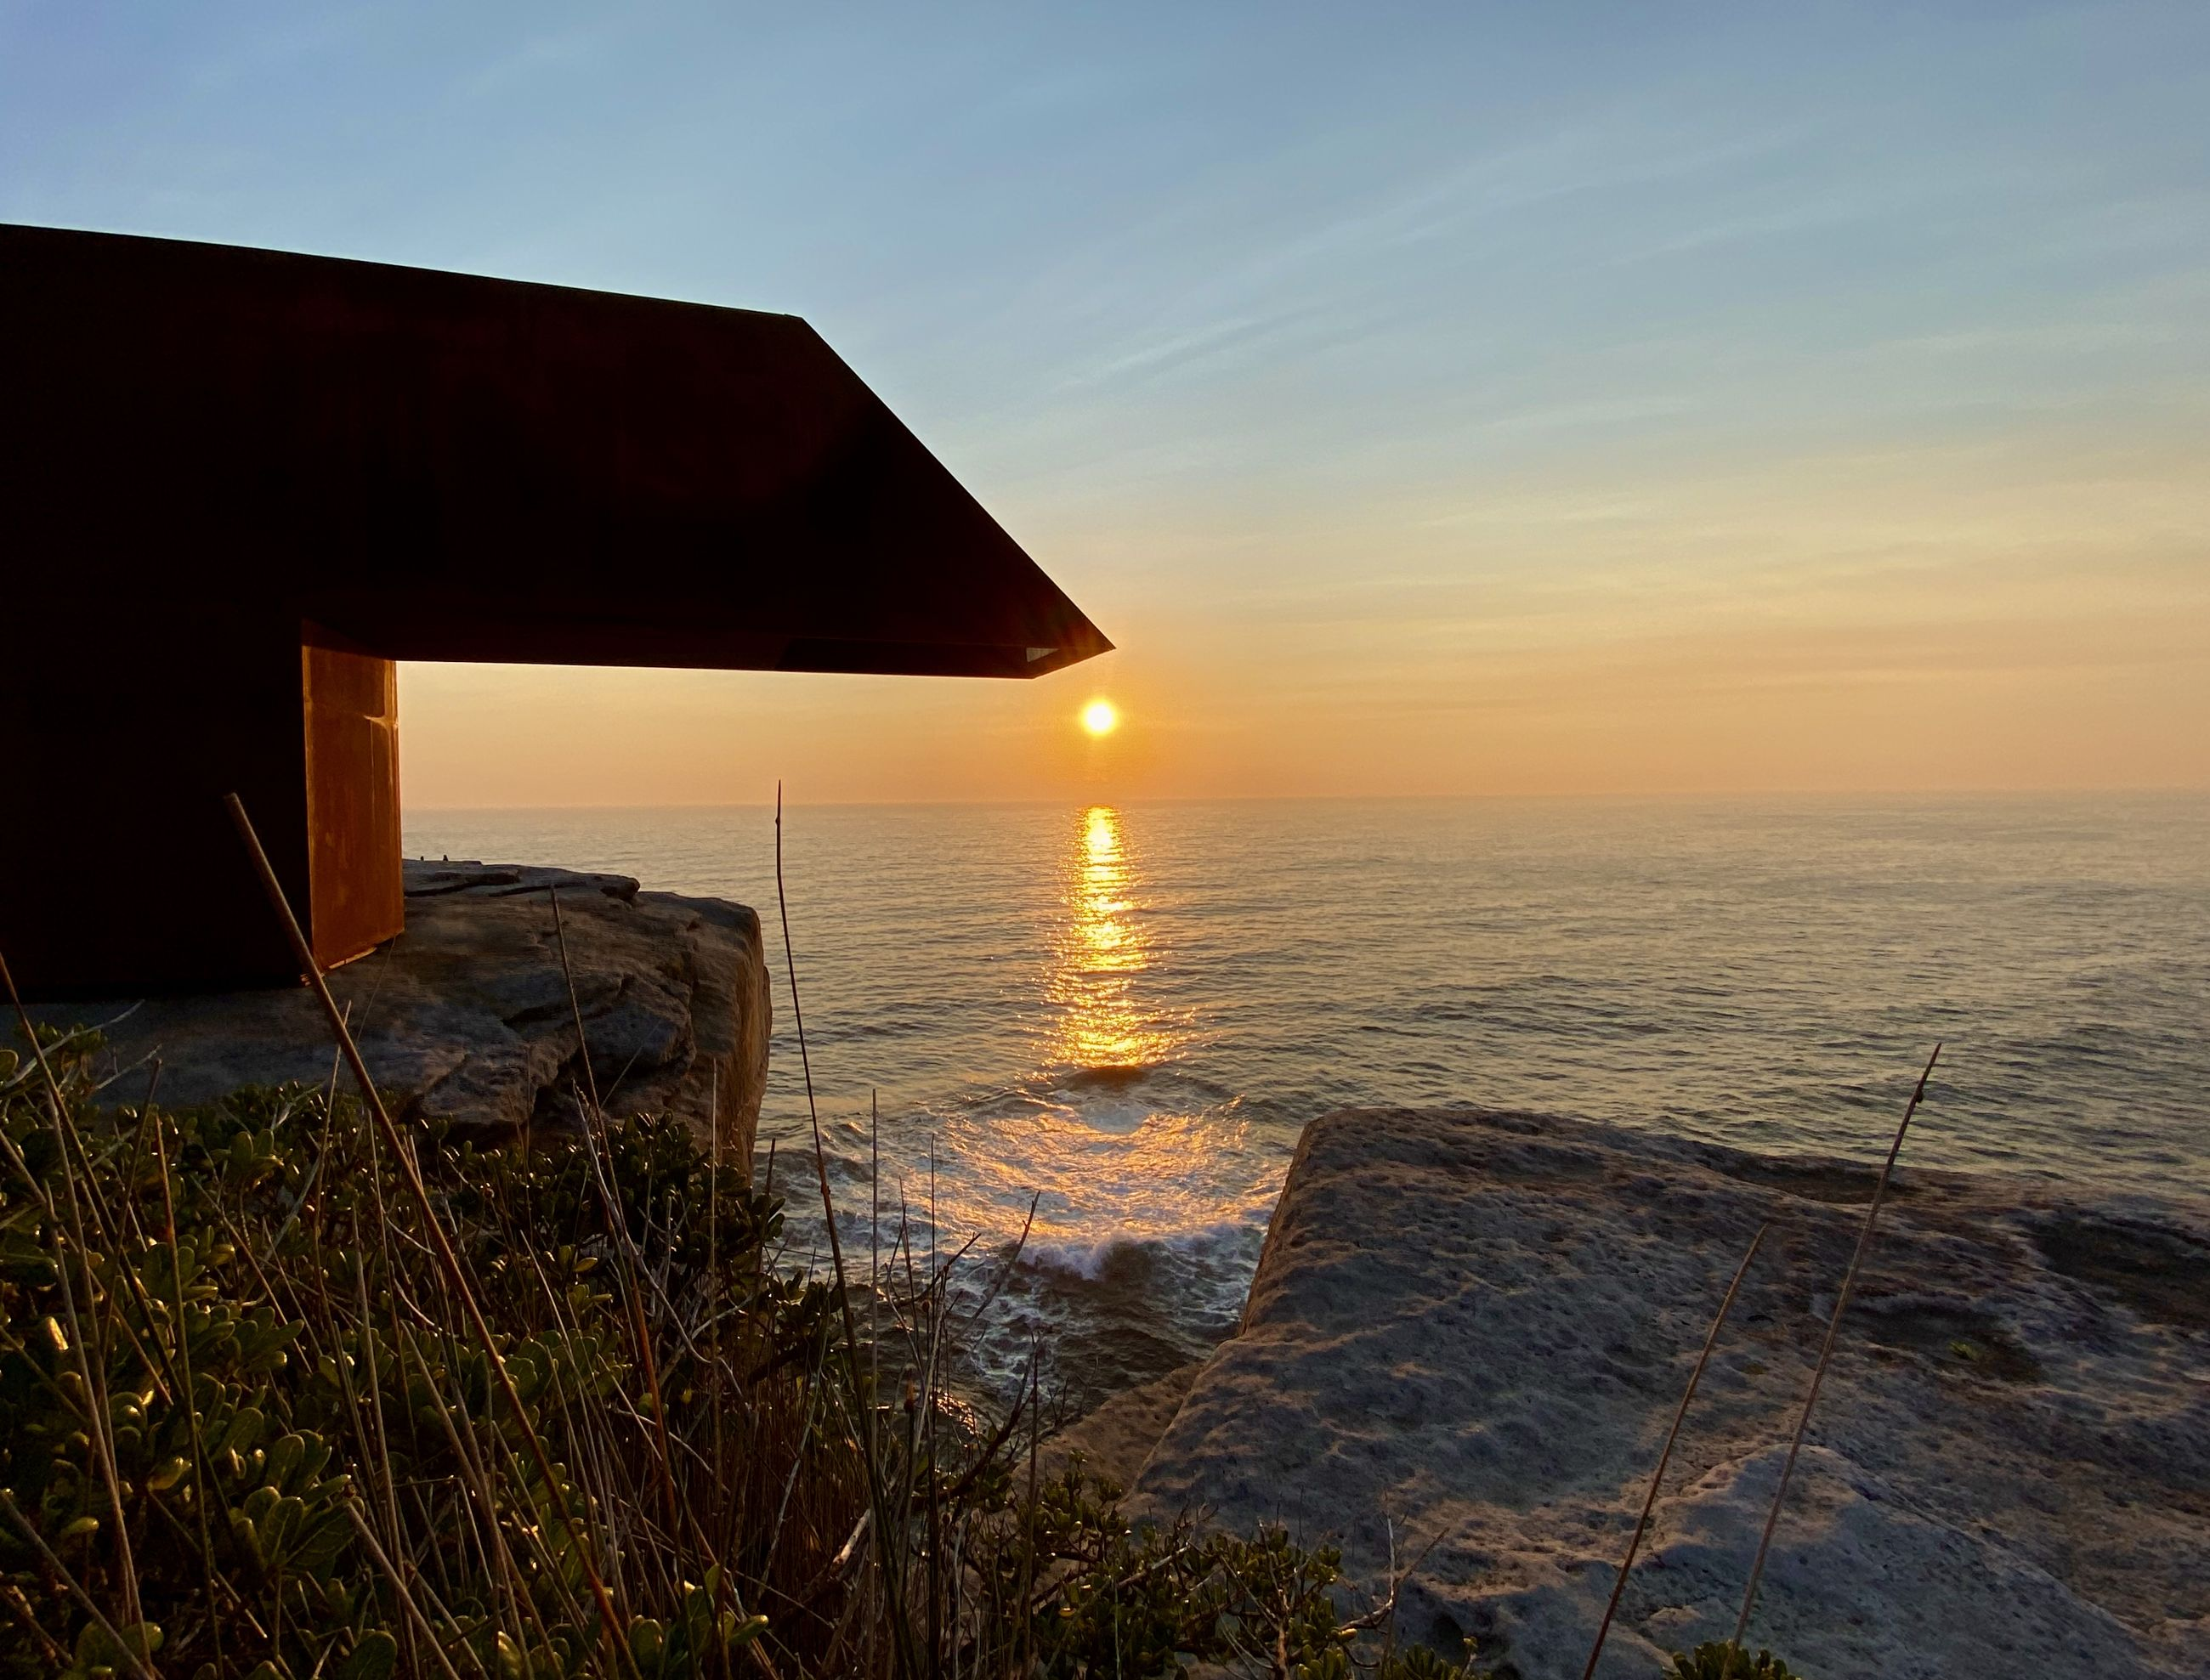 sea, sky, sunset, water, horizon, horizon over water, scenics - nature, beauty in nature, sun, tranquility, nature, tranquil scene, beach, land, built structure, architecture, no people, idyllic, orange color, outdoors